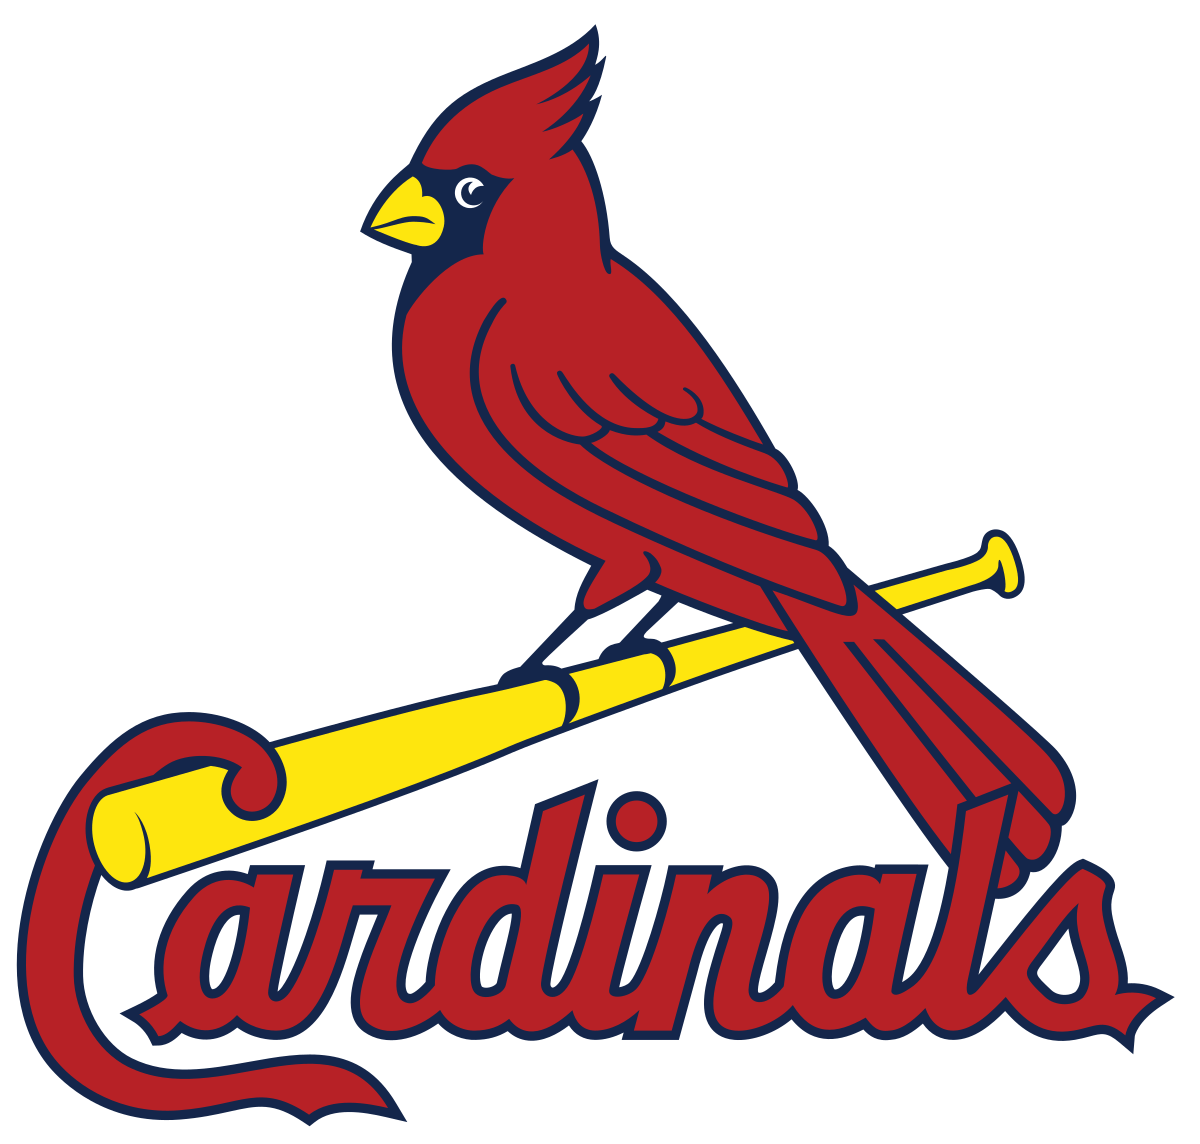 St. Louis Cardinals Logo - St. Louis Cardinals